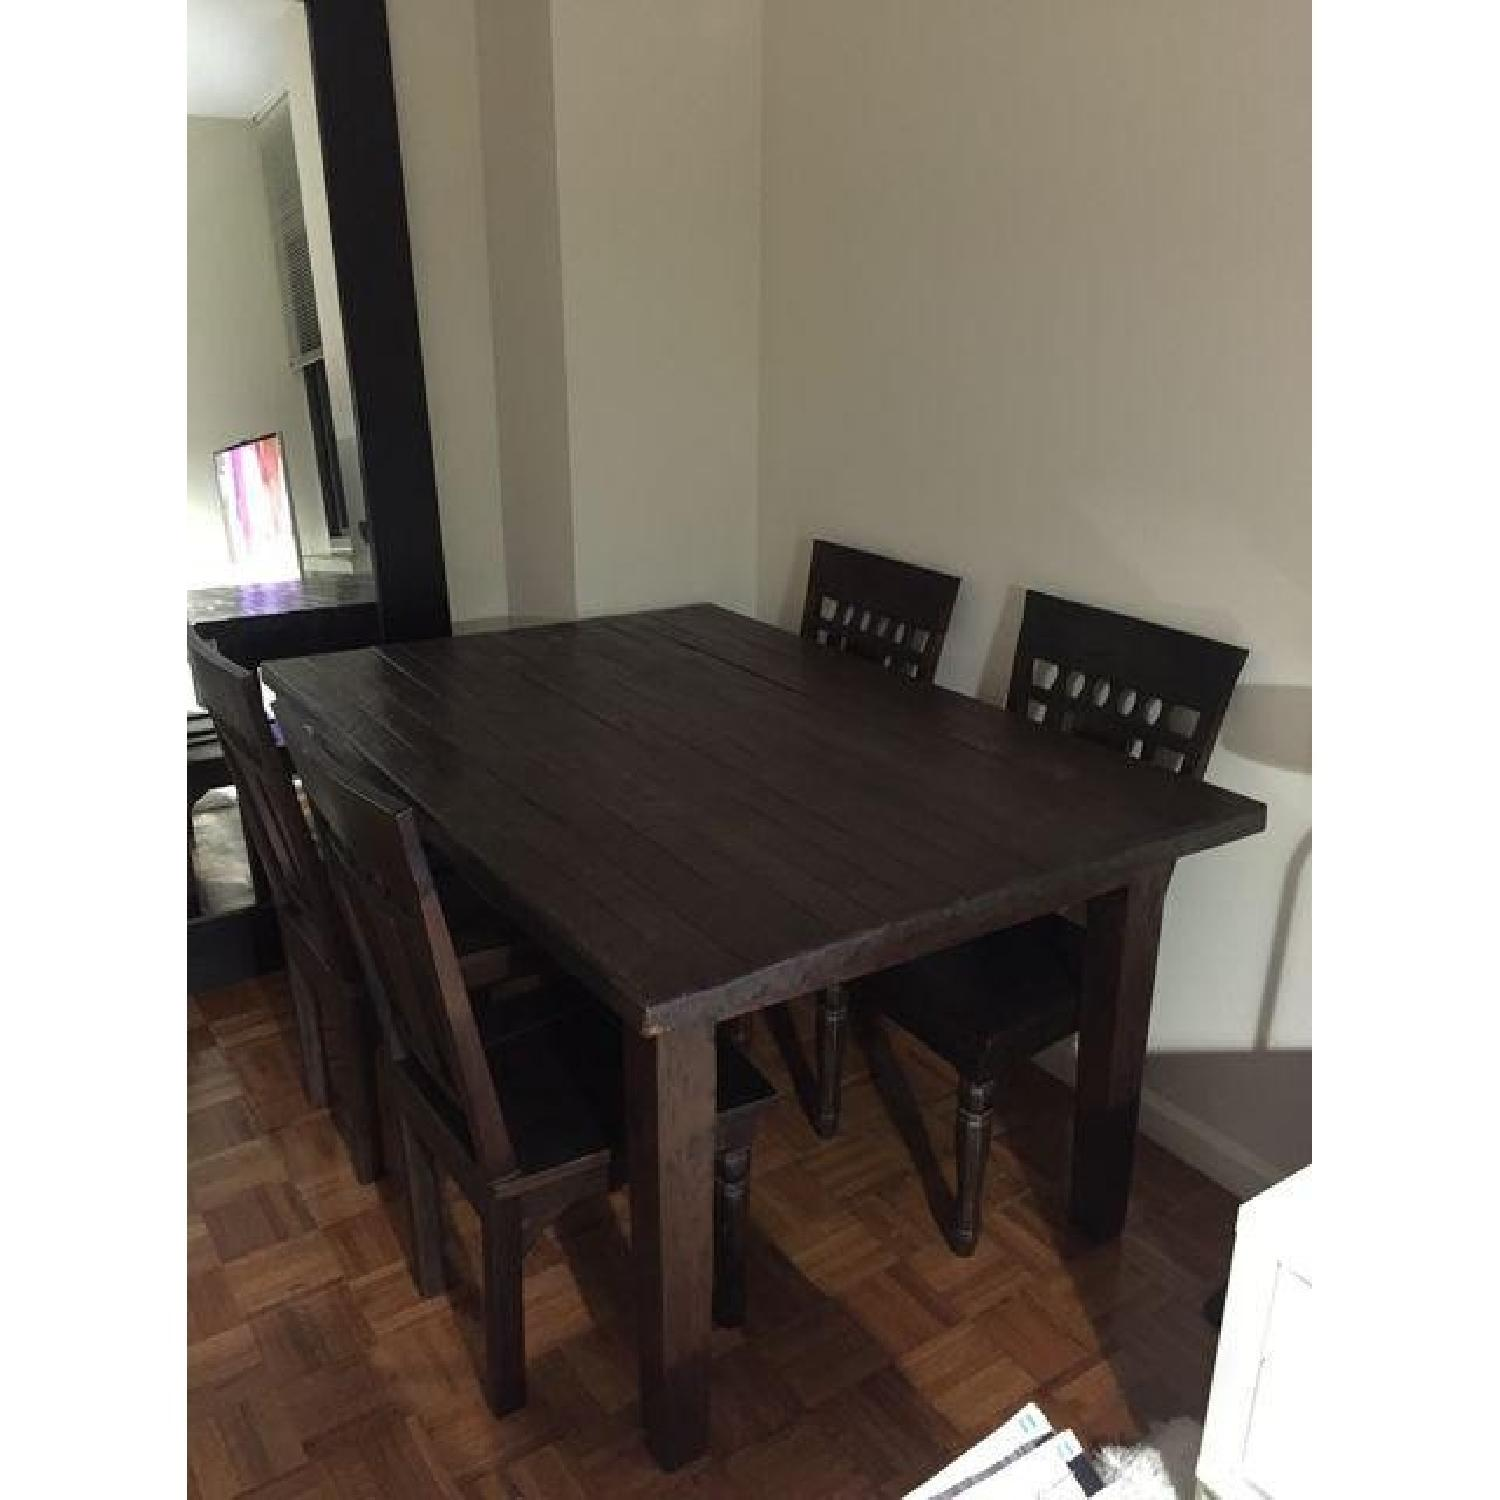 Far East Trading Co. 5 Piece Teak Dining Set - image-4